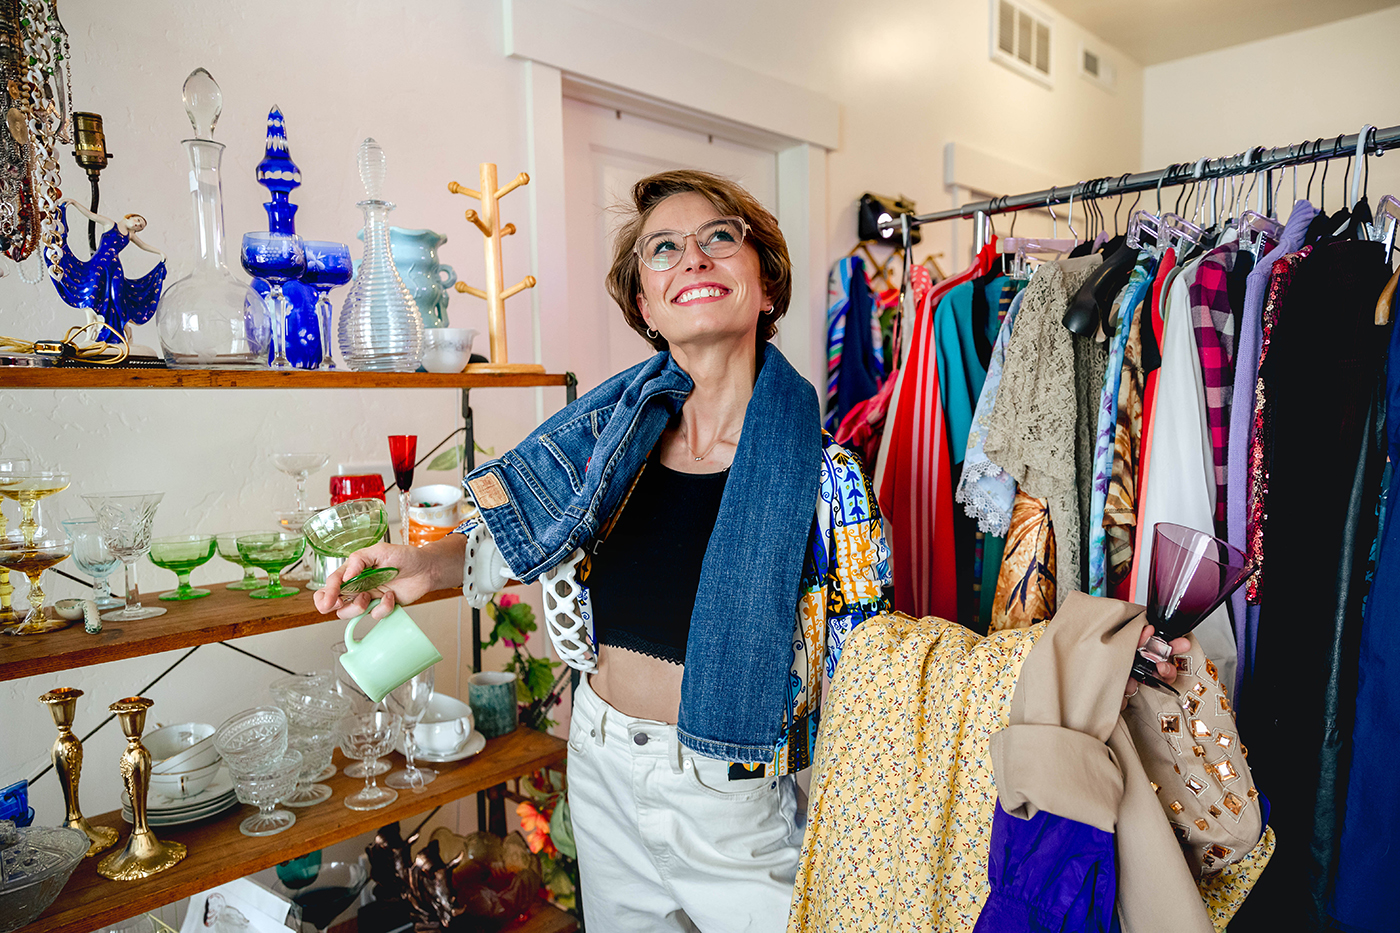 Kristen Wolfe, the owner of Kissing Whiskey Vintage, has had a passion for reused goods practically their whole life.